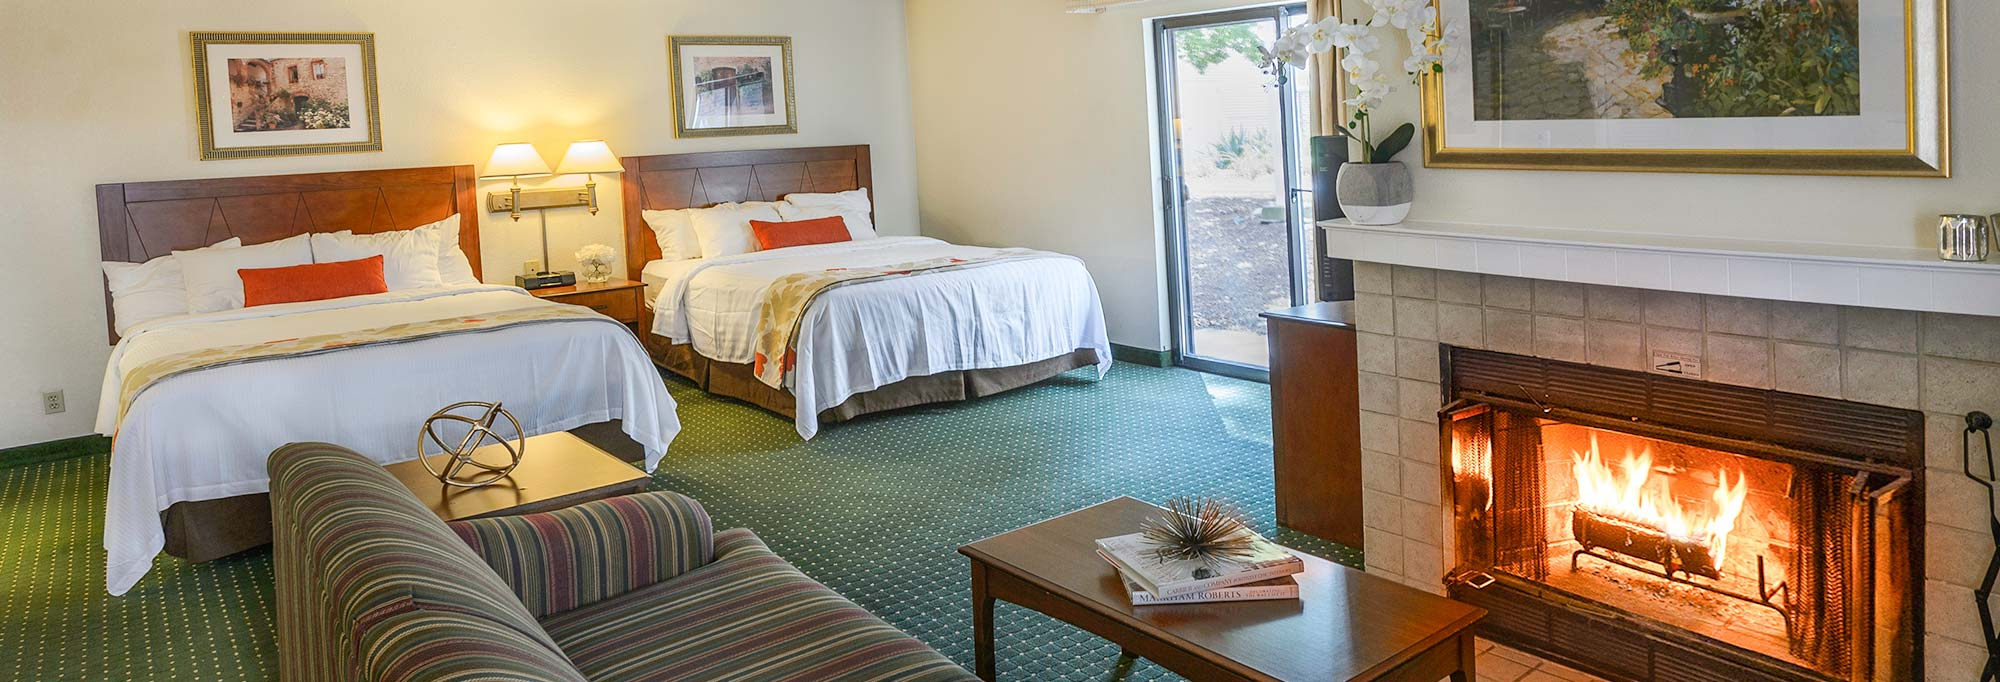 affordable hotel in merrimack nh residences at daniel webster rh residencesatdanielwebster com residences at daniel webster merrimack nh residences at daniel webster tennessee